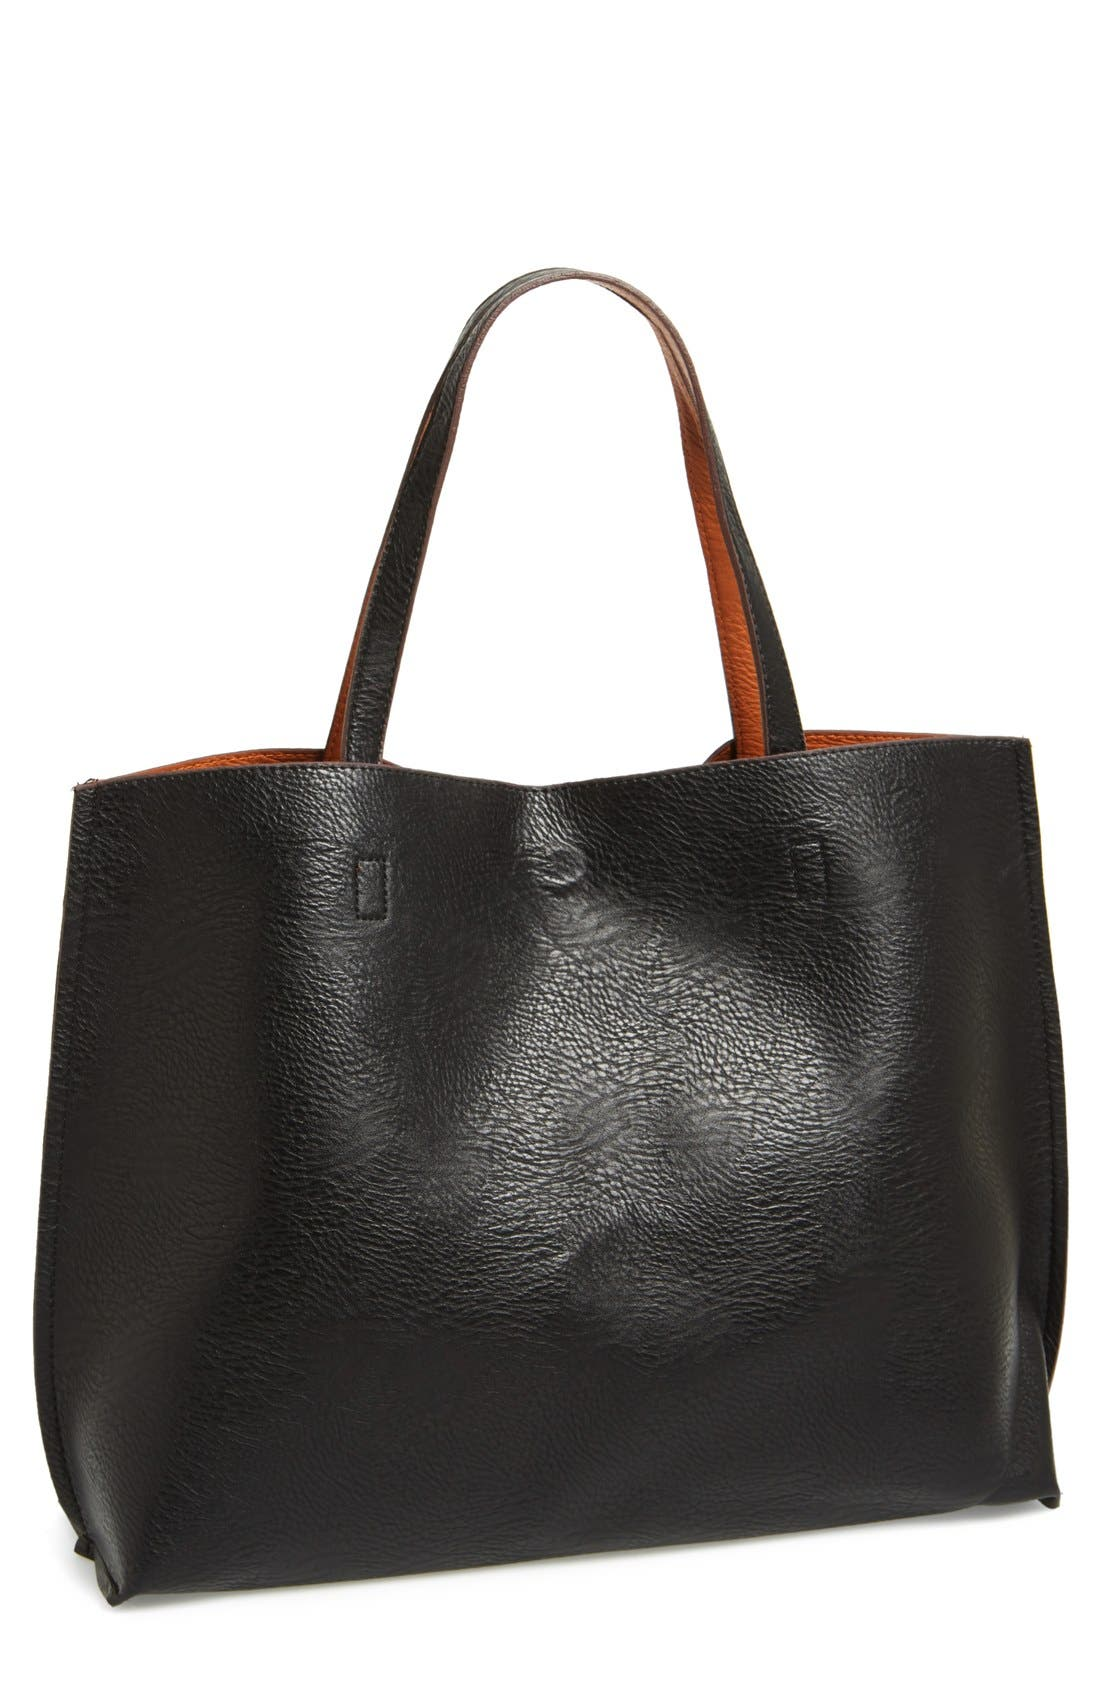 Reversible Faux Leather Tote & Wristlet,                             Alternate thumbnail 7, color,                             BLACK/ COGNAC